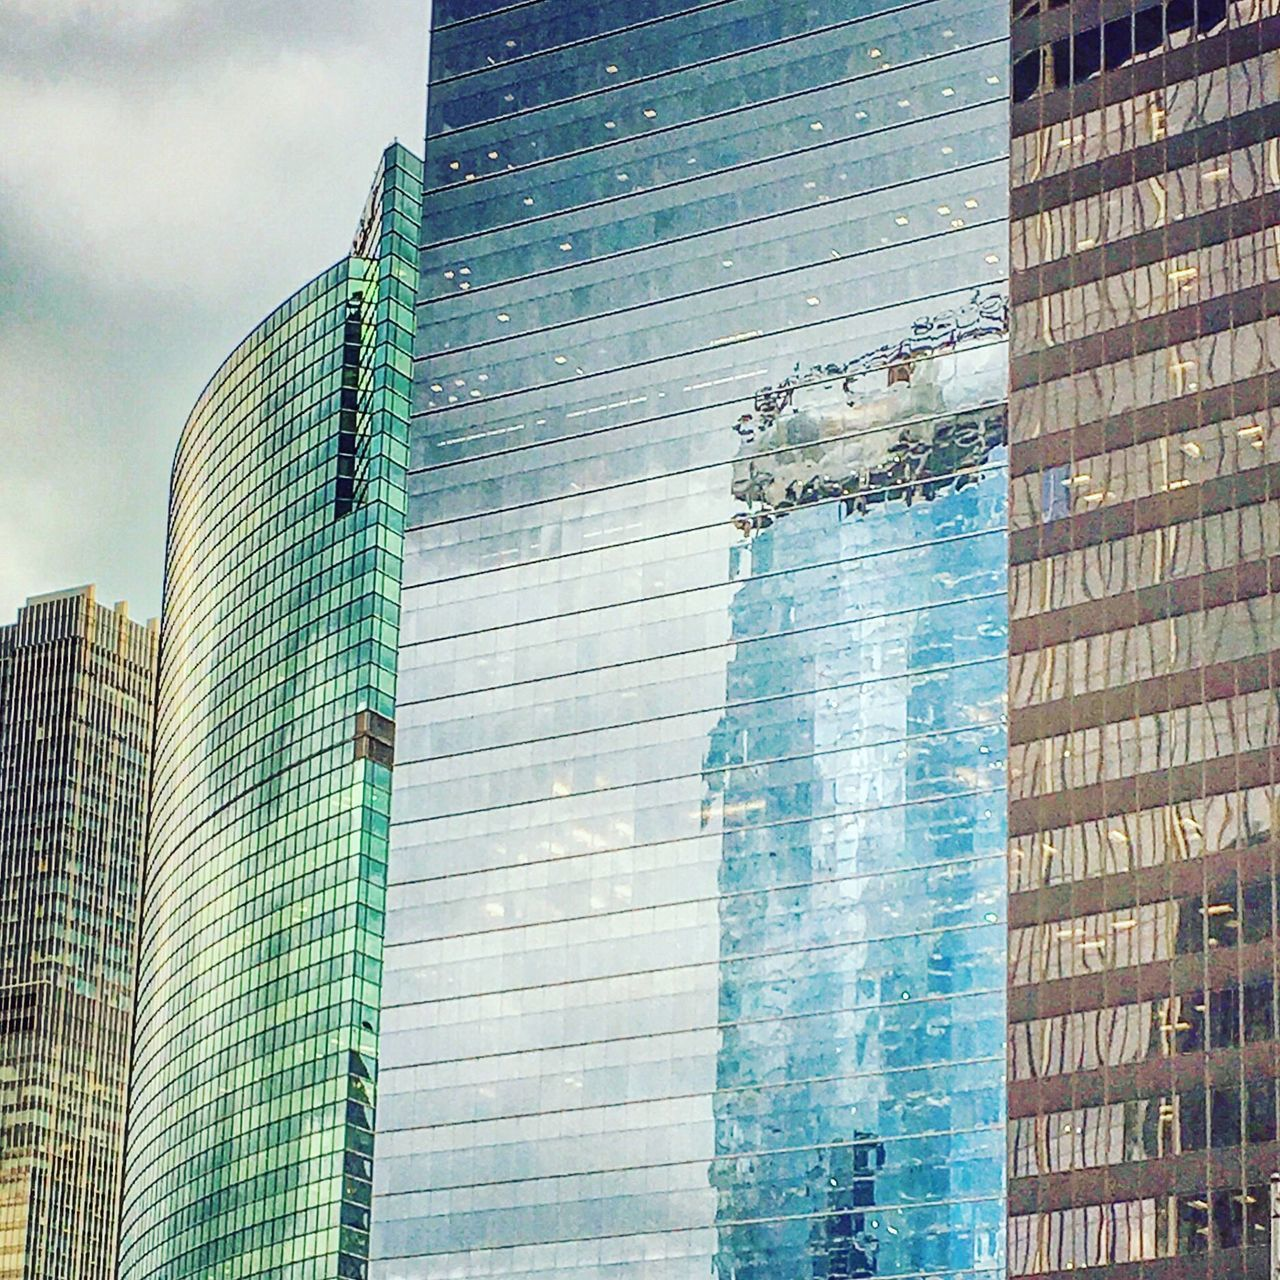 Mychicagopics Chicago Chicago Architecture Reflections Rushour EyeEm Best Shots EyeEm Gallery Camerateur Iphonephotography Amateurphotography Igersoftheday Cityscapes The Architect - 2016 EyeEm Awards